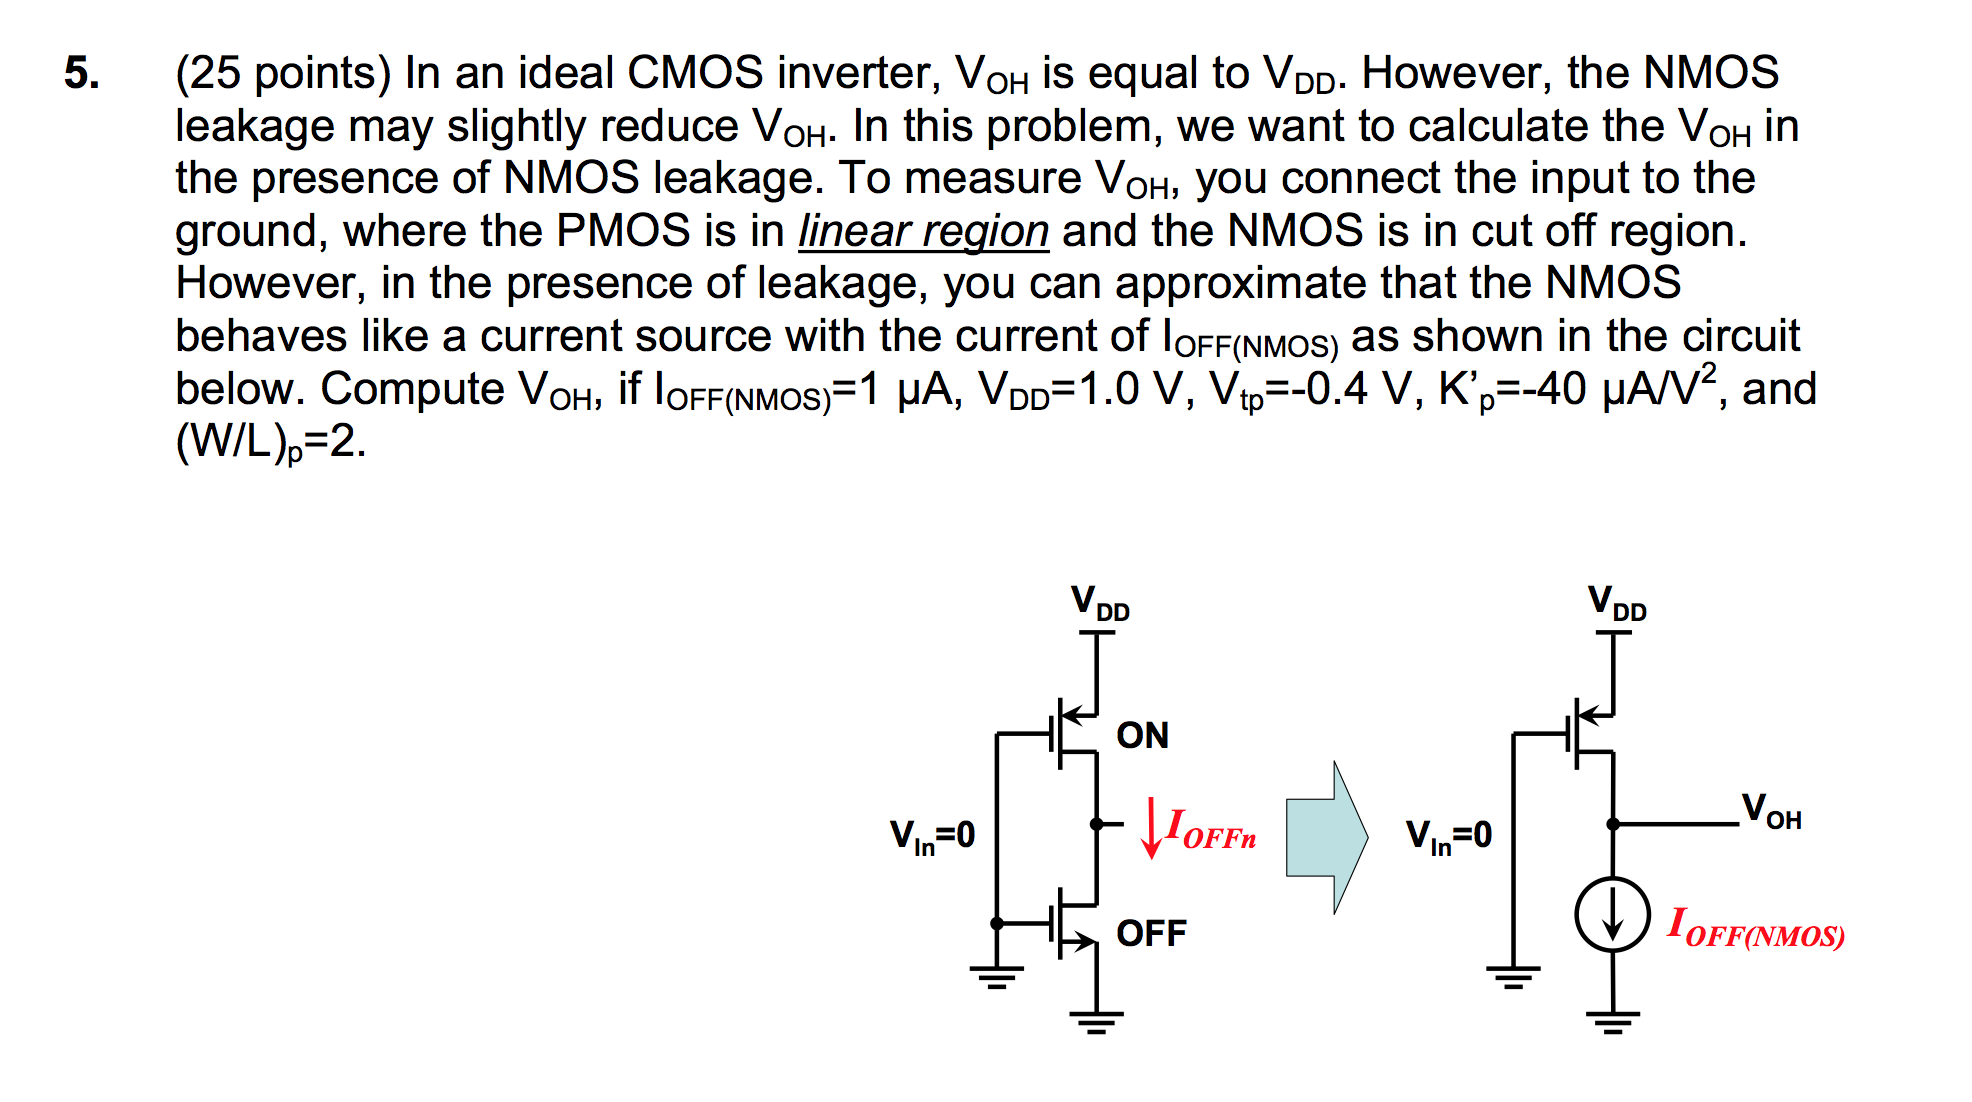 In an ideal CMOS inverter, VOH is equal to VDD. Ho